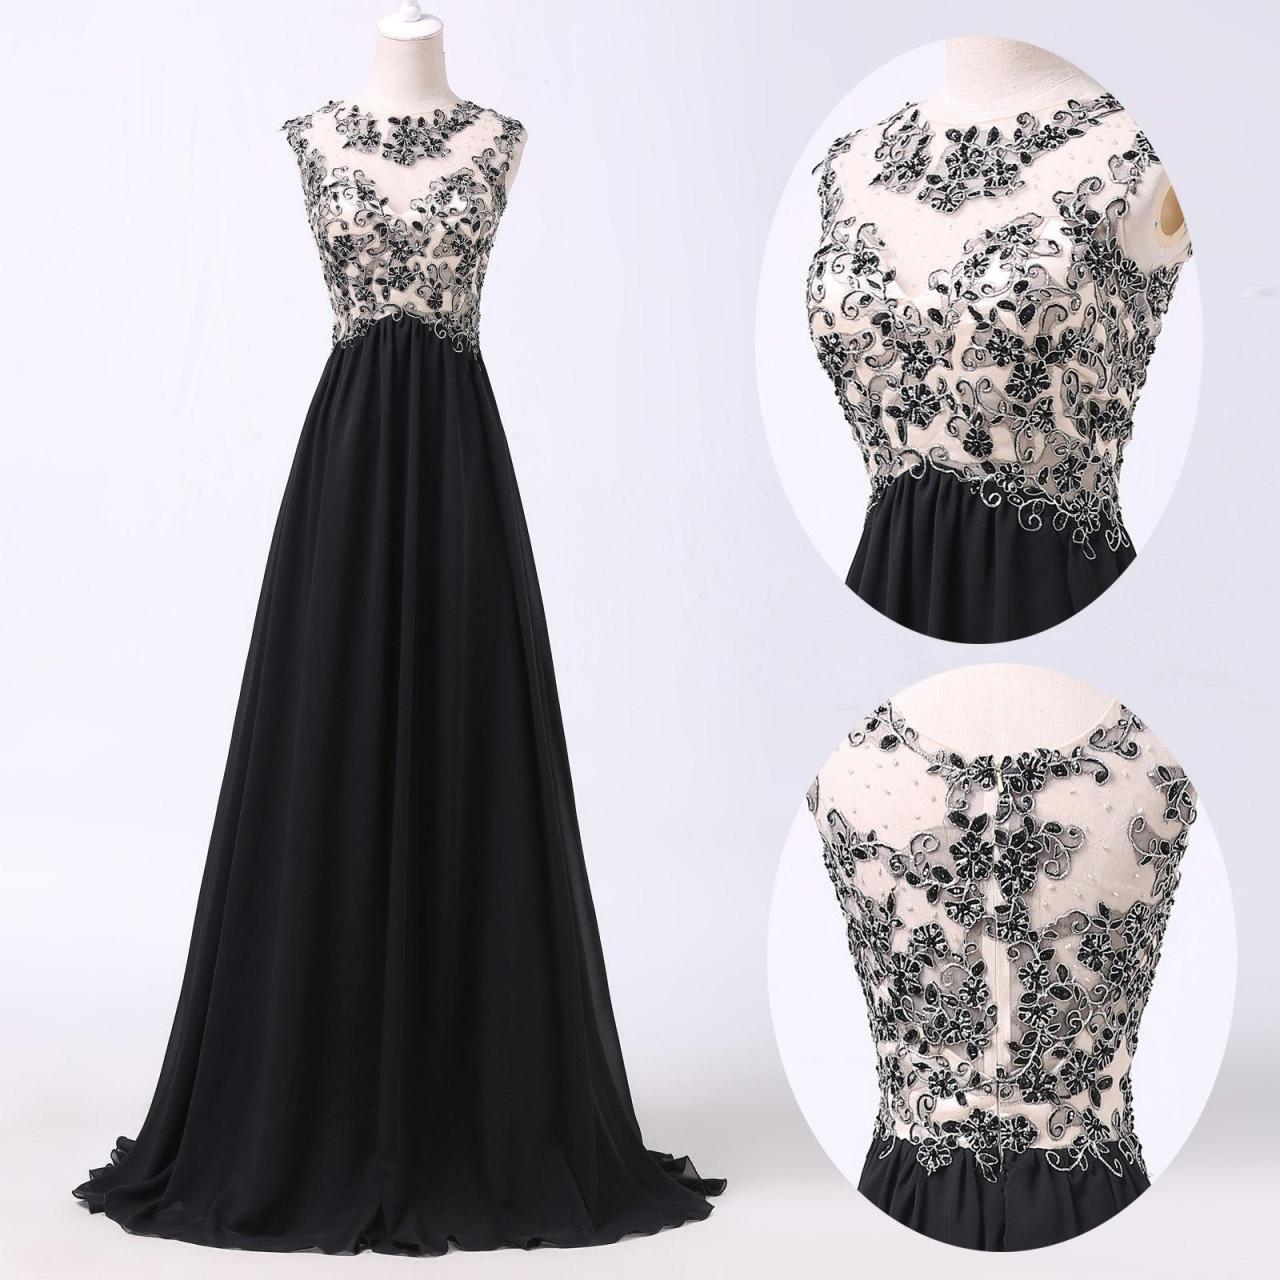 A Line Prom Dresses,Black Lace Prom Dress,Simple Prom Dress,Modest ...